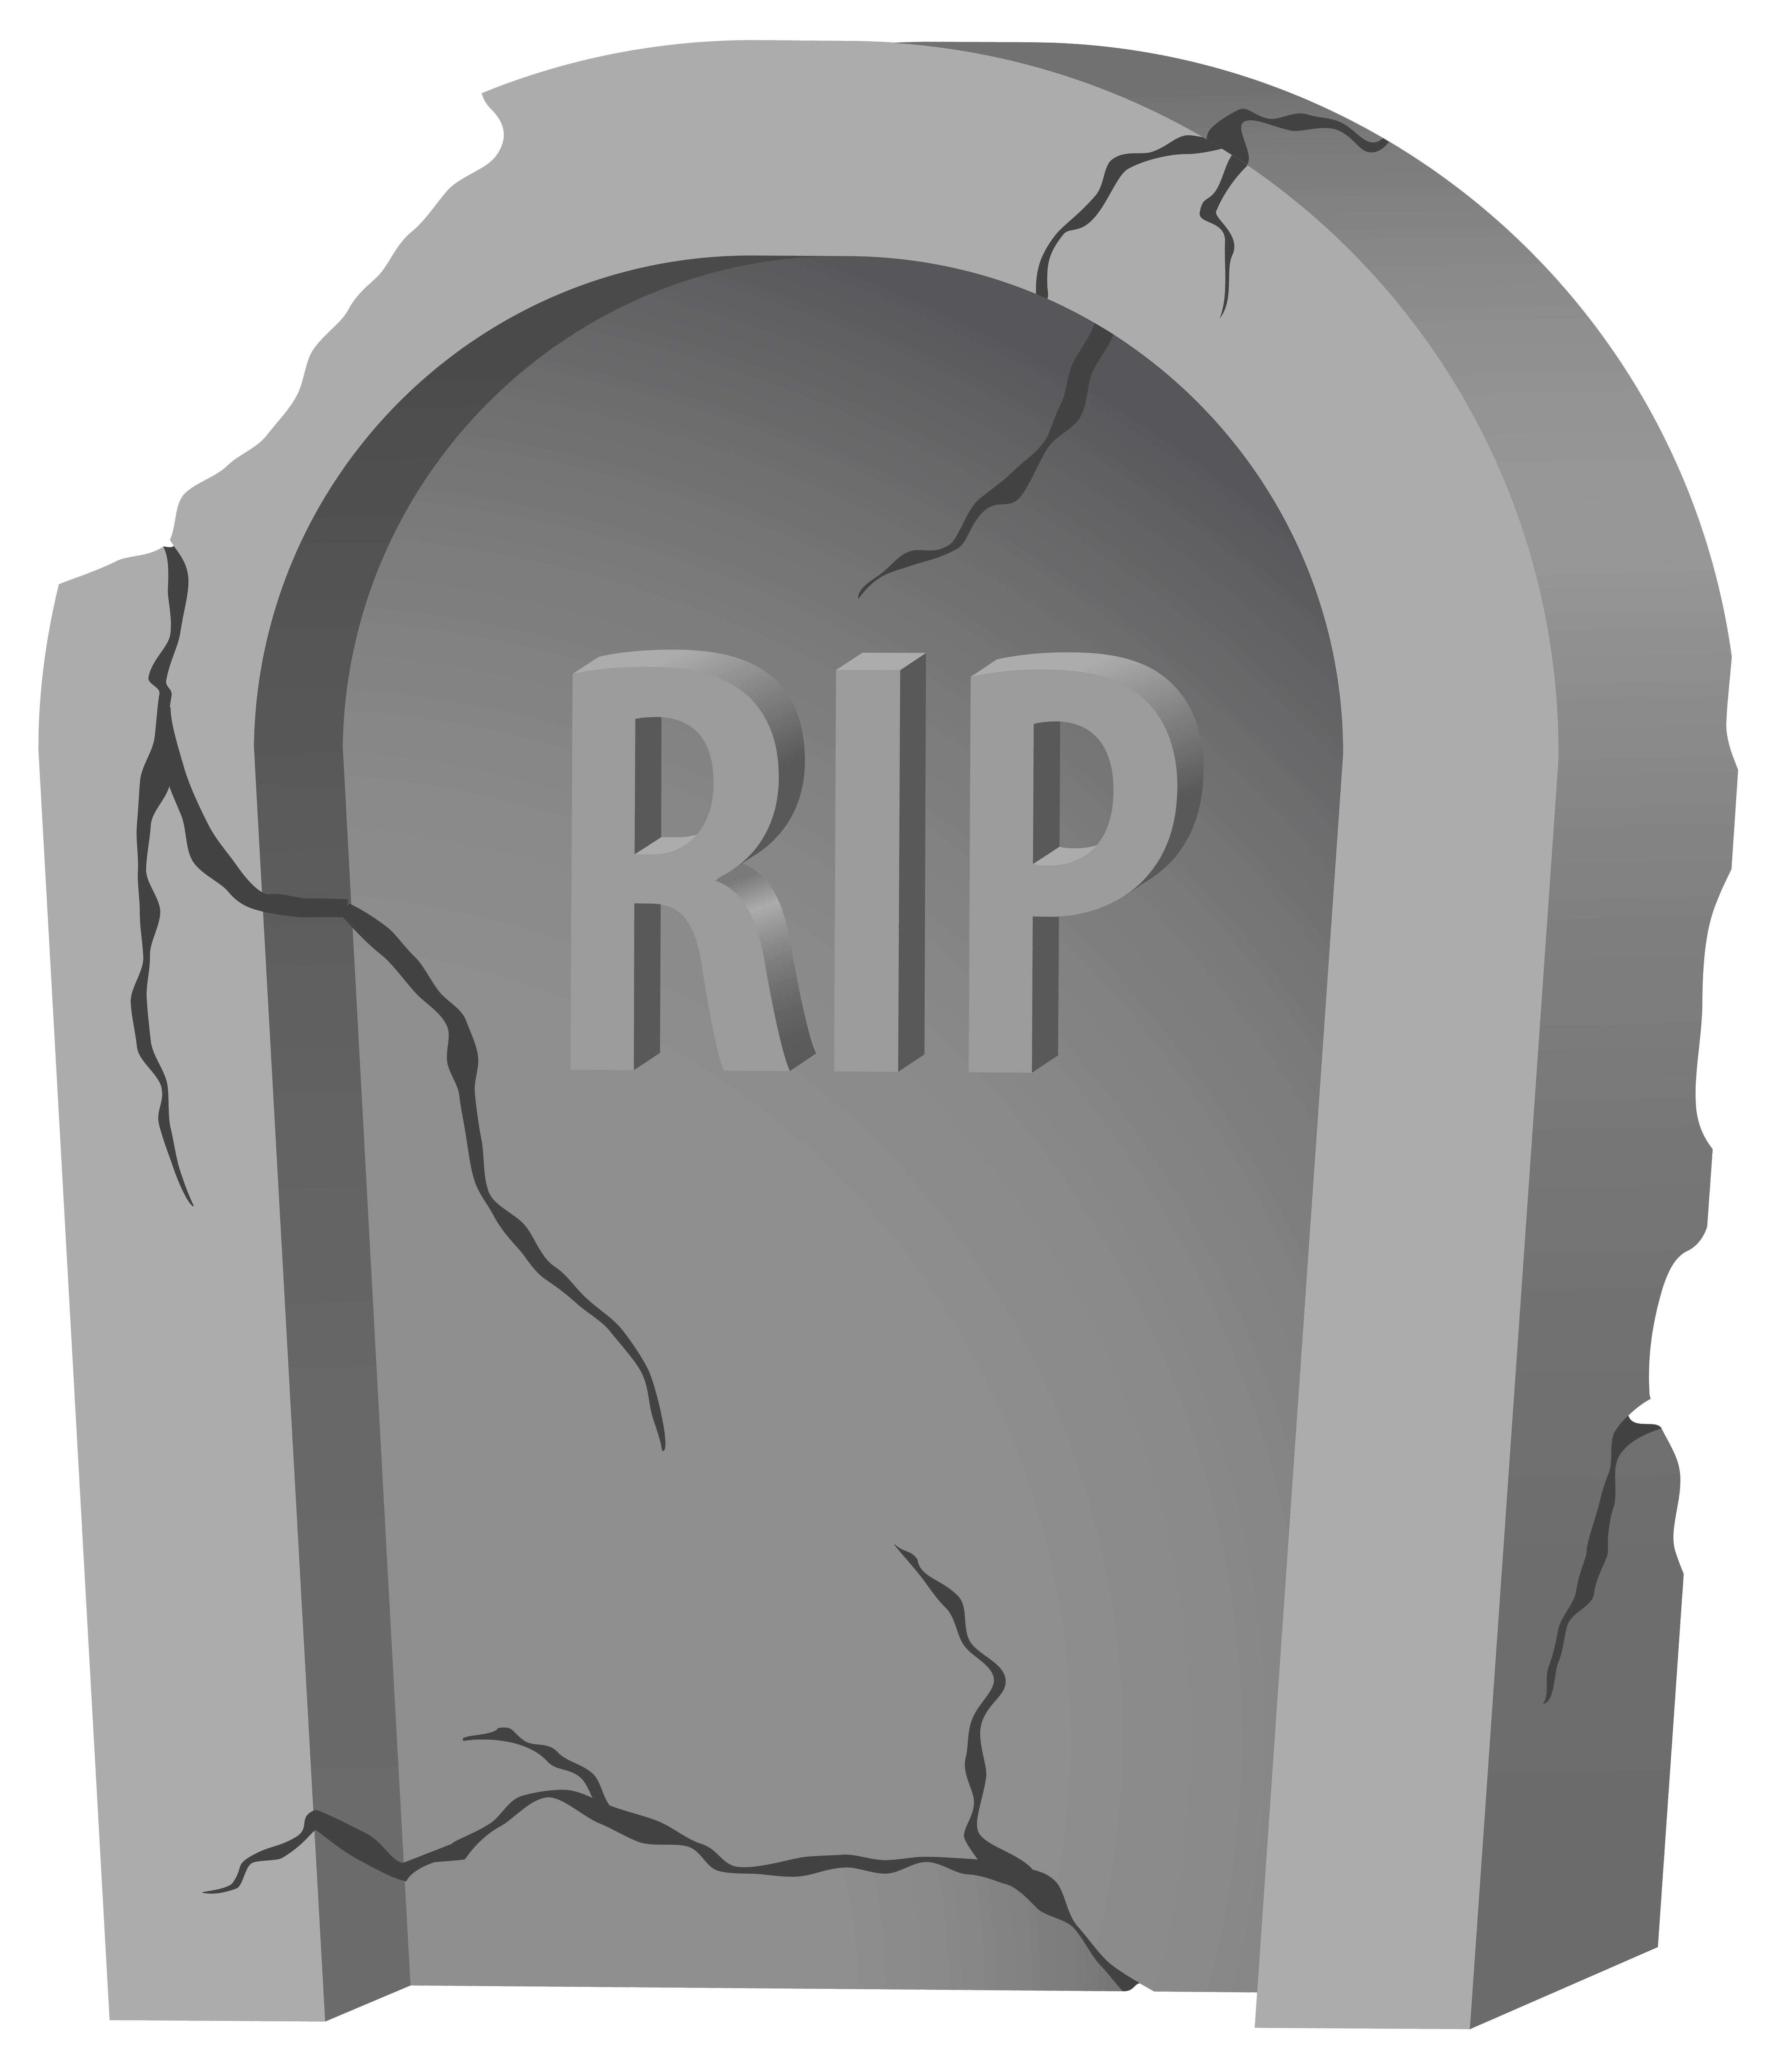 Tombstone clipart transparent Full View and size Image